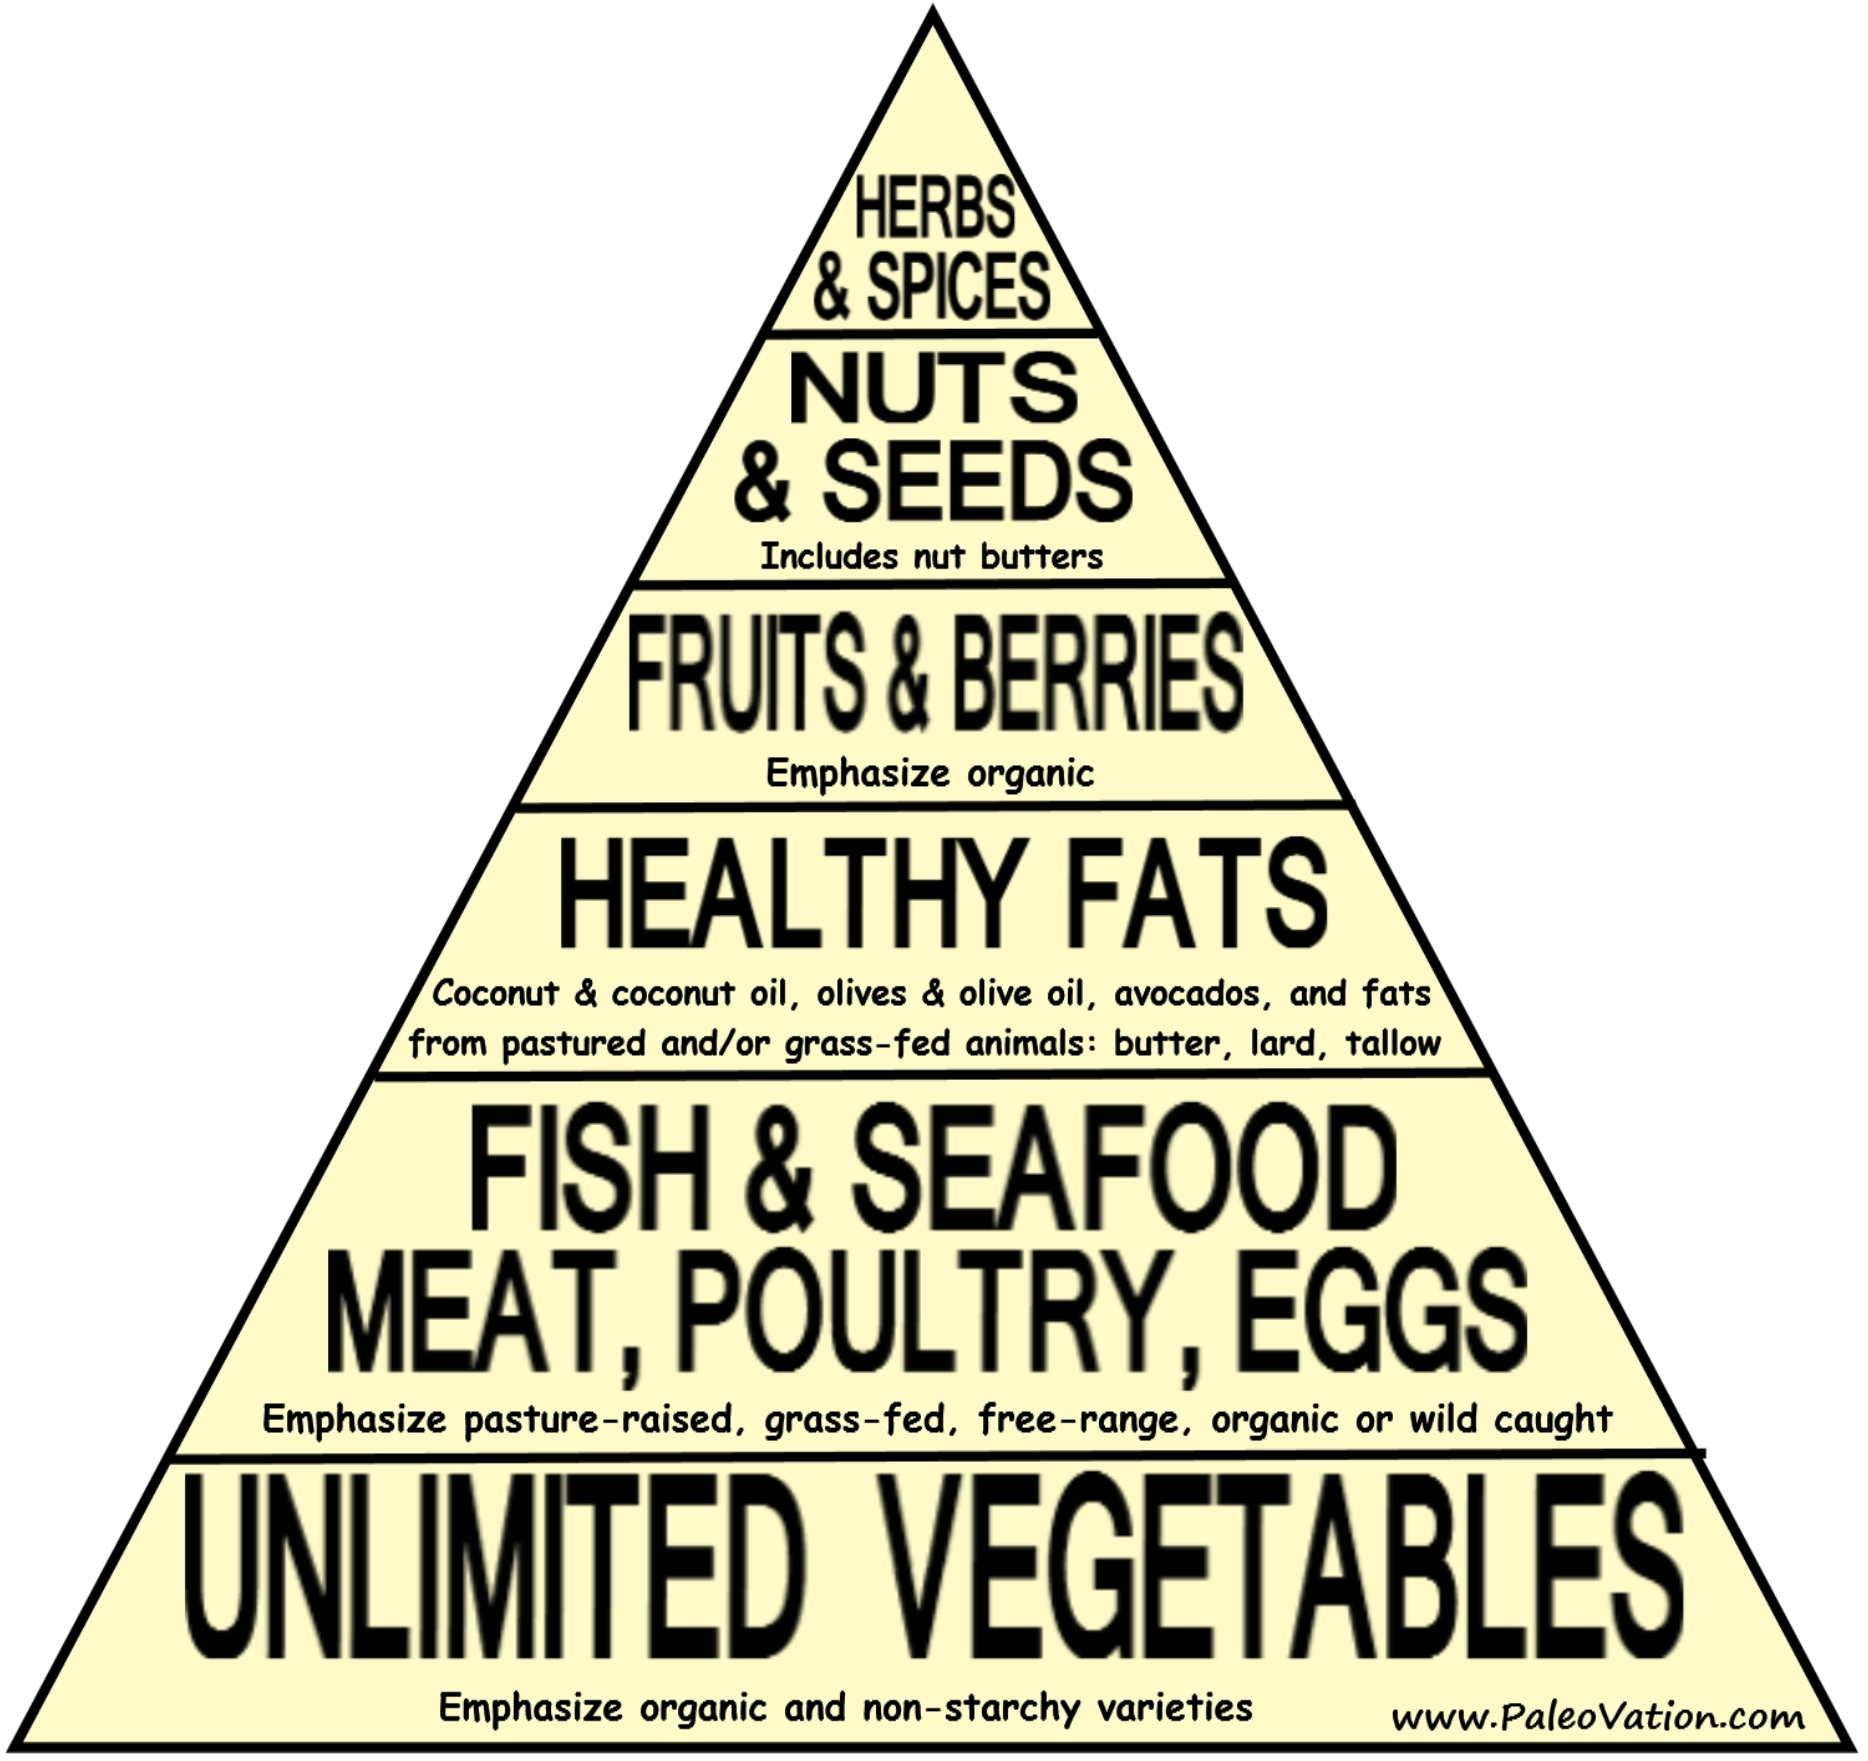 The Paleo Pyramid, healthy, animal proteins, grassfed, free range, pastured, coconut oil, olive, avocado, wild caught, organic